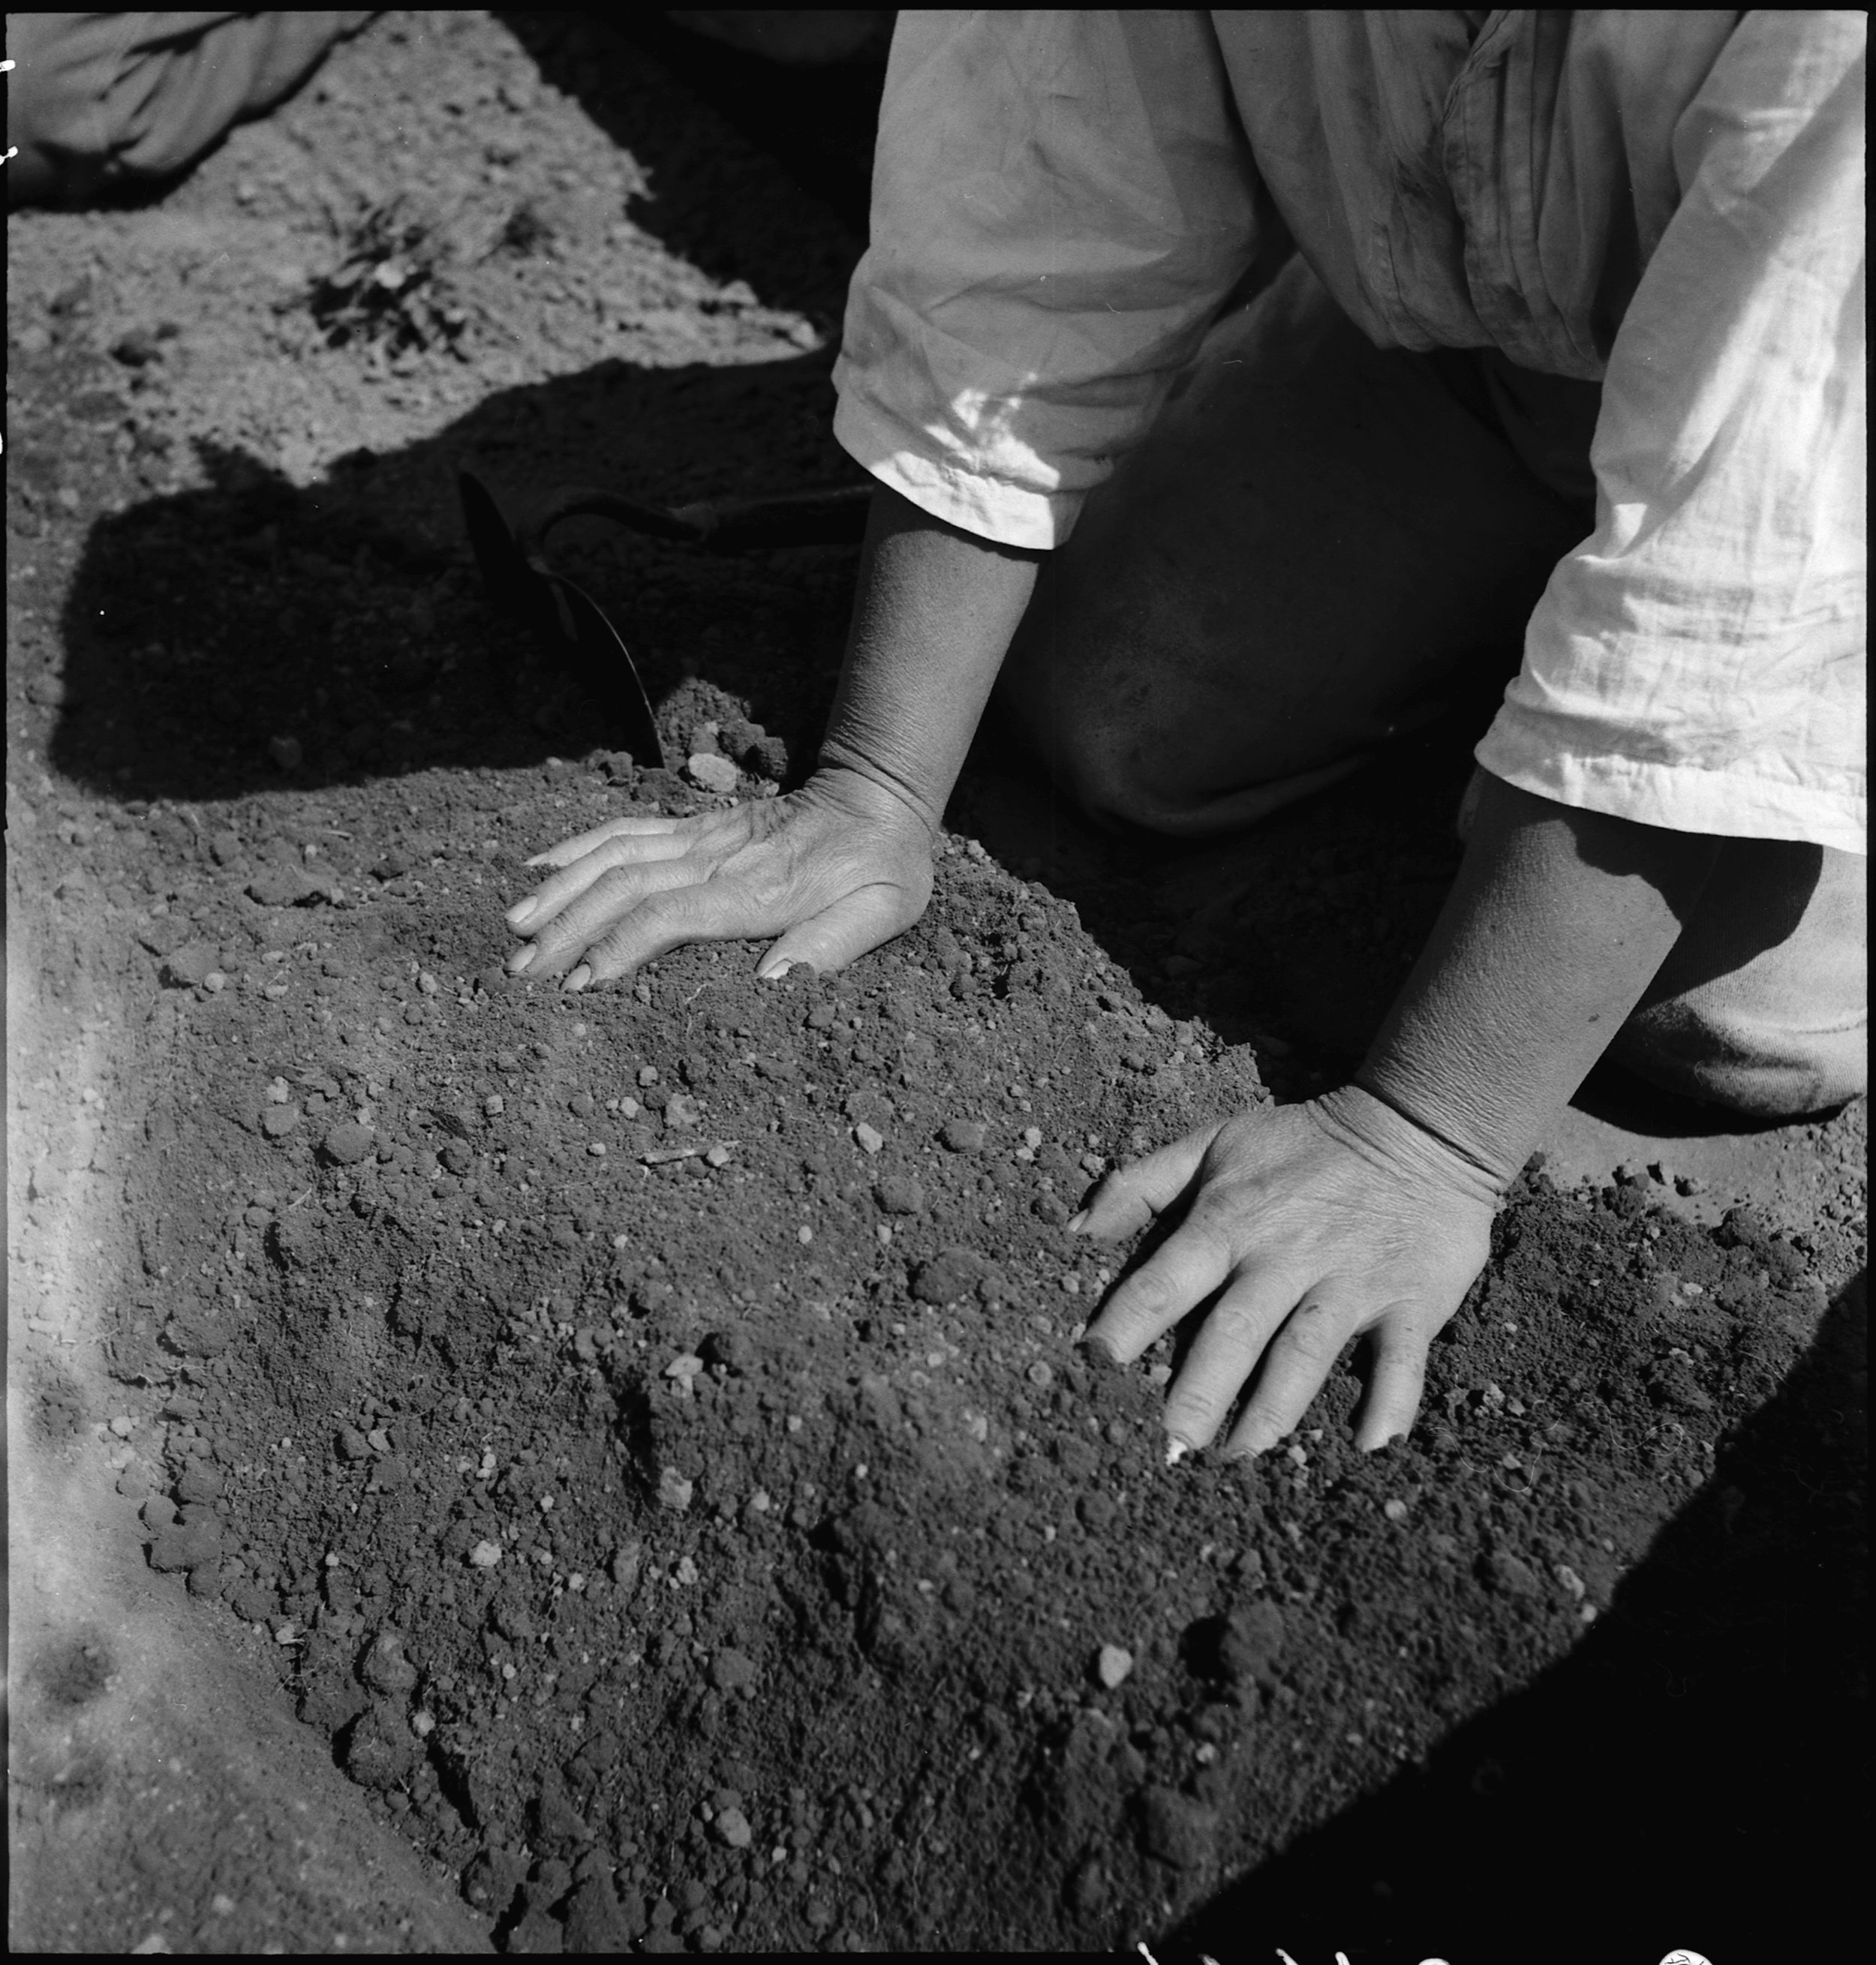 Centerville, California. Hands of woman farm- worker preparing soil for transplanting tomato plants, in a field in Alameda County, California, several weeks before evacuation. Farmers and other evacuees of Japanese ancestry will be given opportunities to follow their callings in War Relocation Authority centers where they will spend the duration.